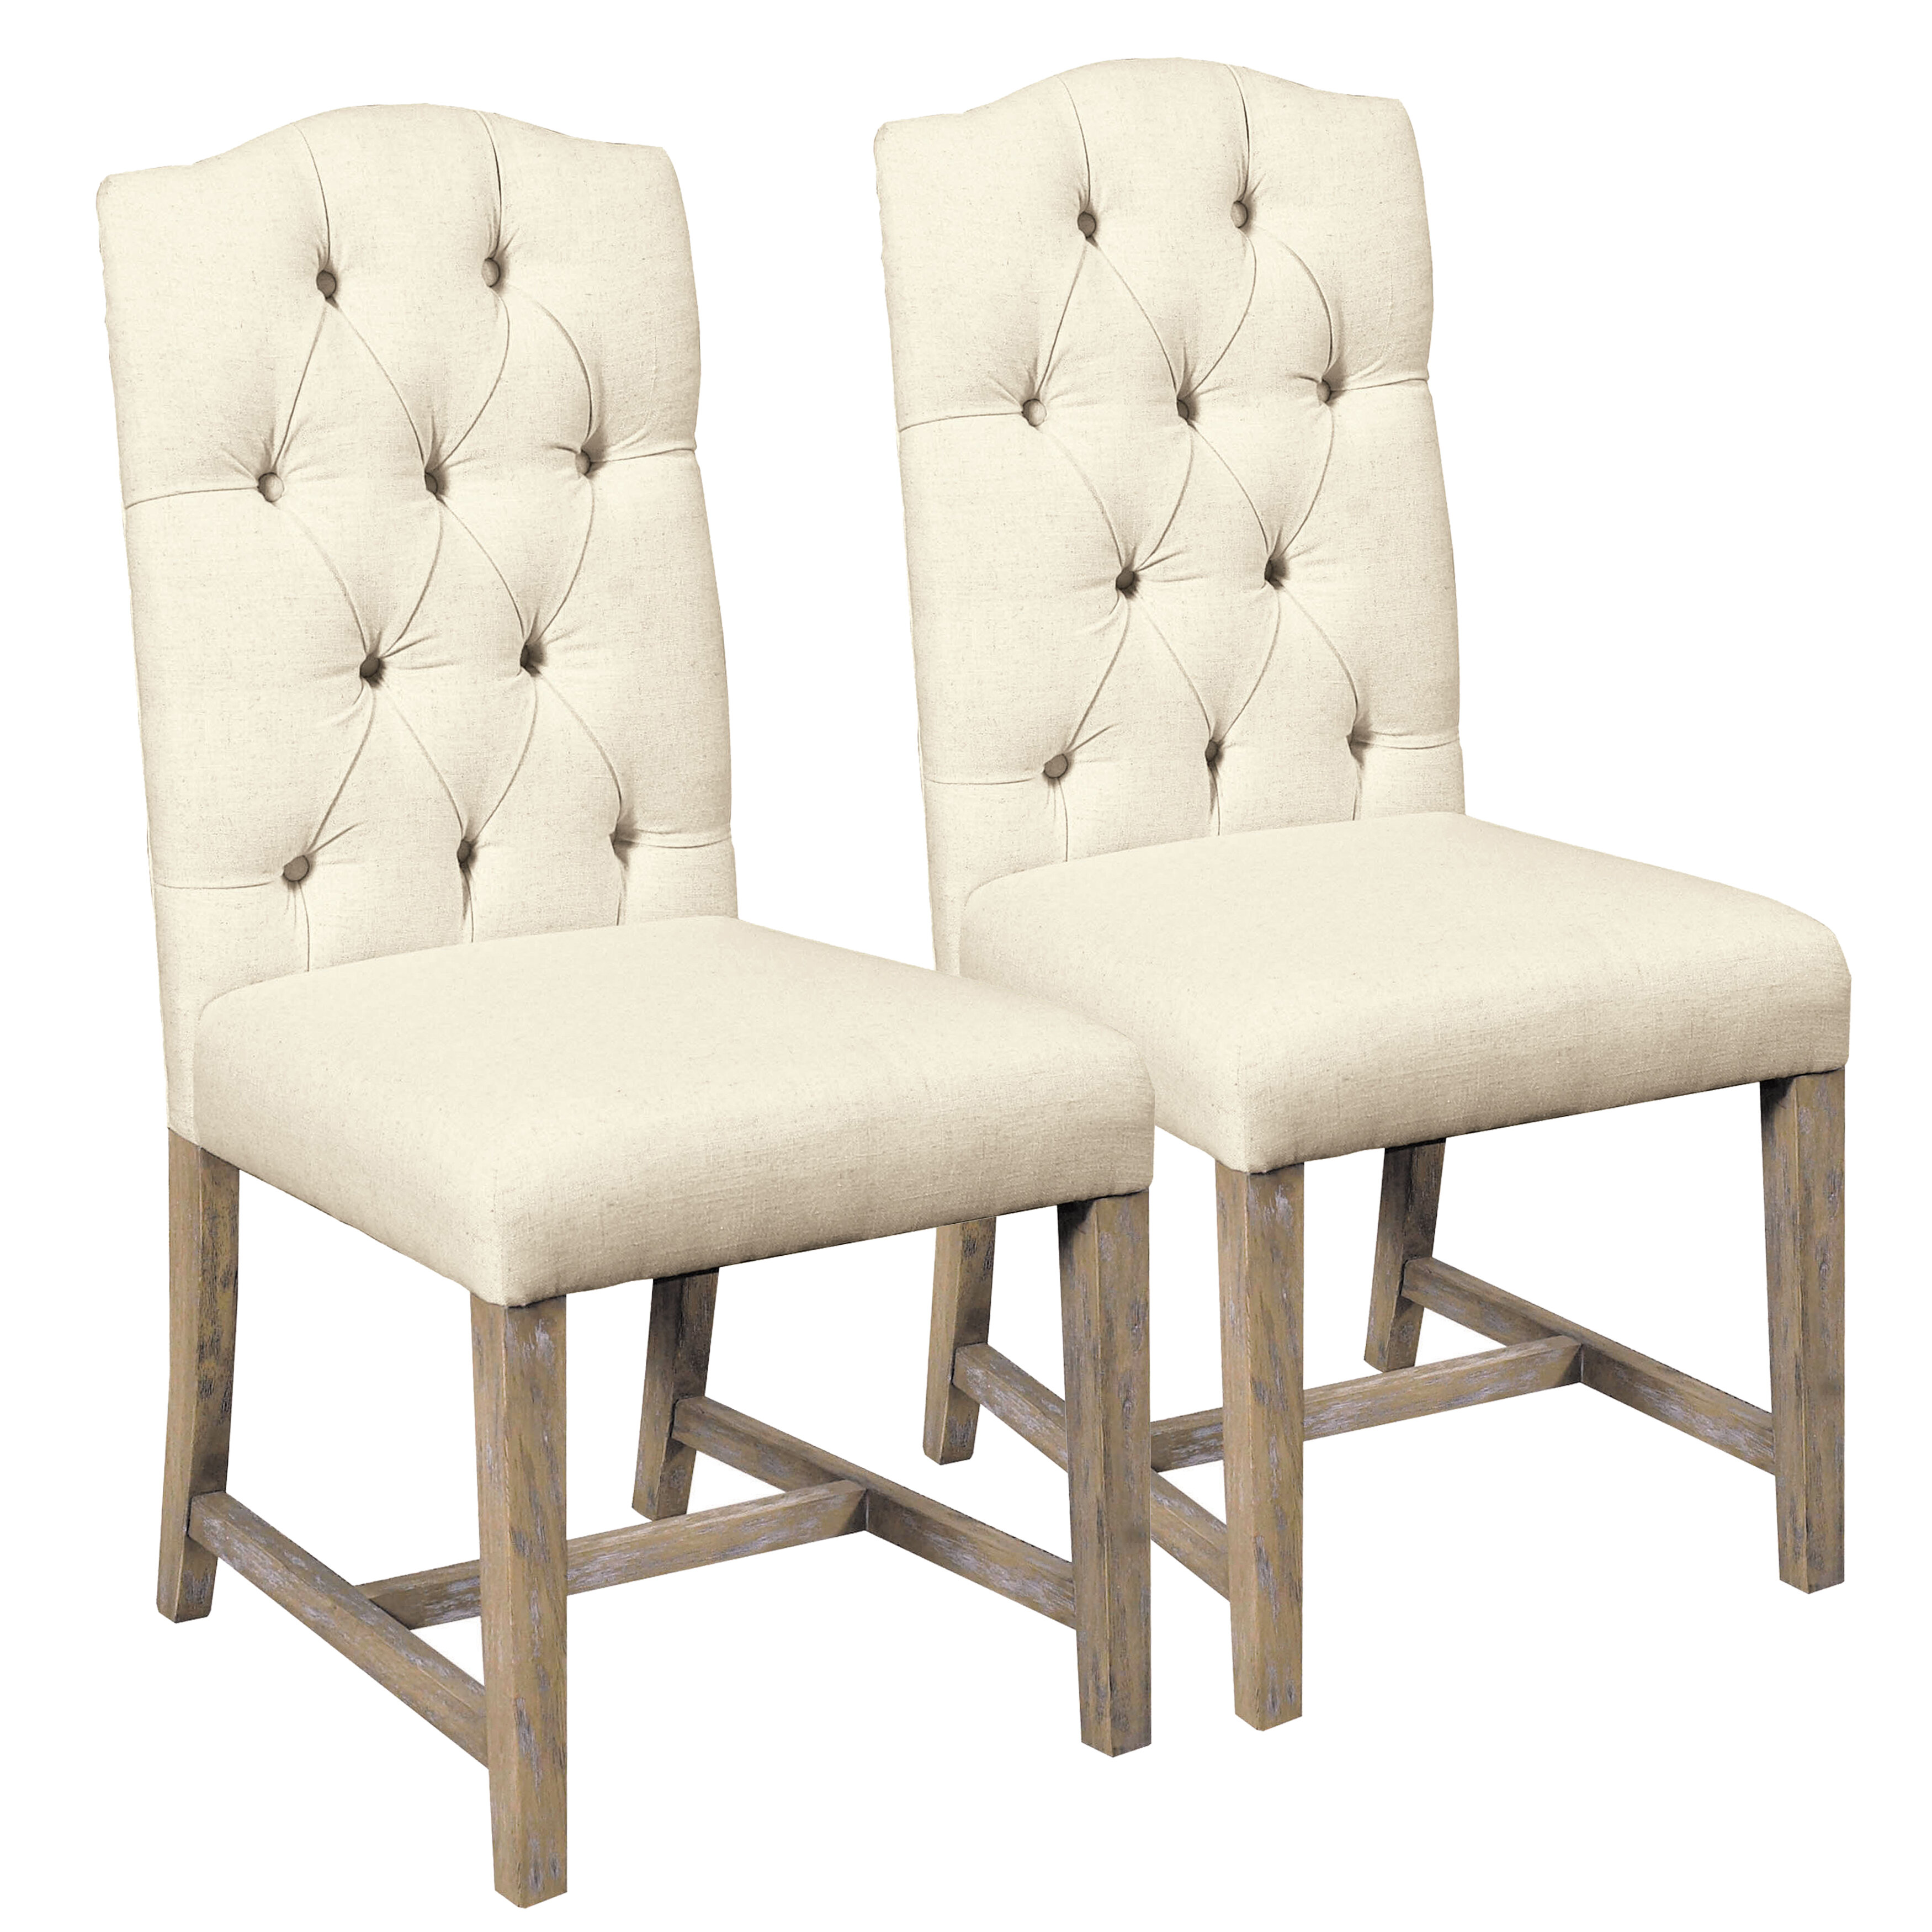 Hobart zoie dining chair reviews joss main